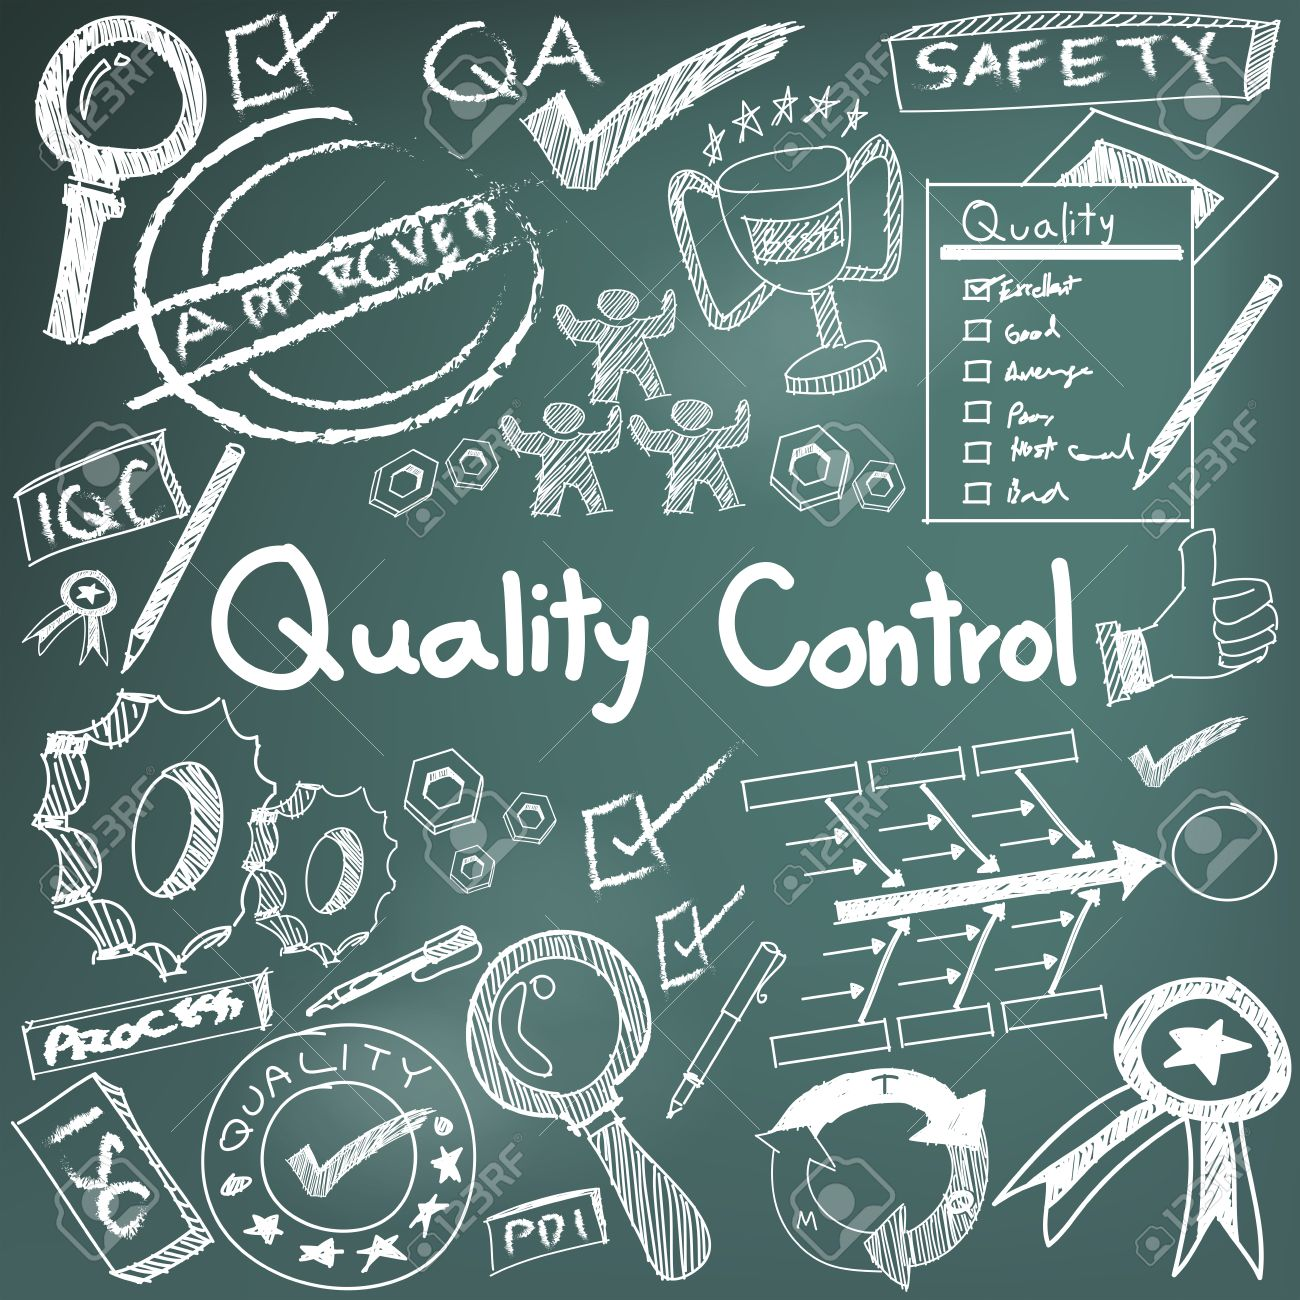 Quality control in manufacturing industry production and operation handwriting doodle sketch design tools sign and symbol in white isolated background paper for engineering management education presentation or introduction with sample text, create by vect - 52658974